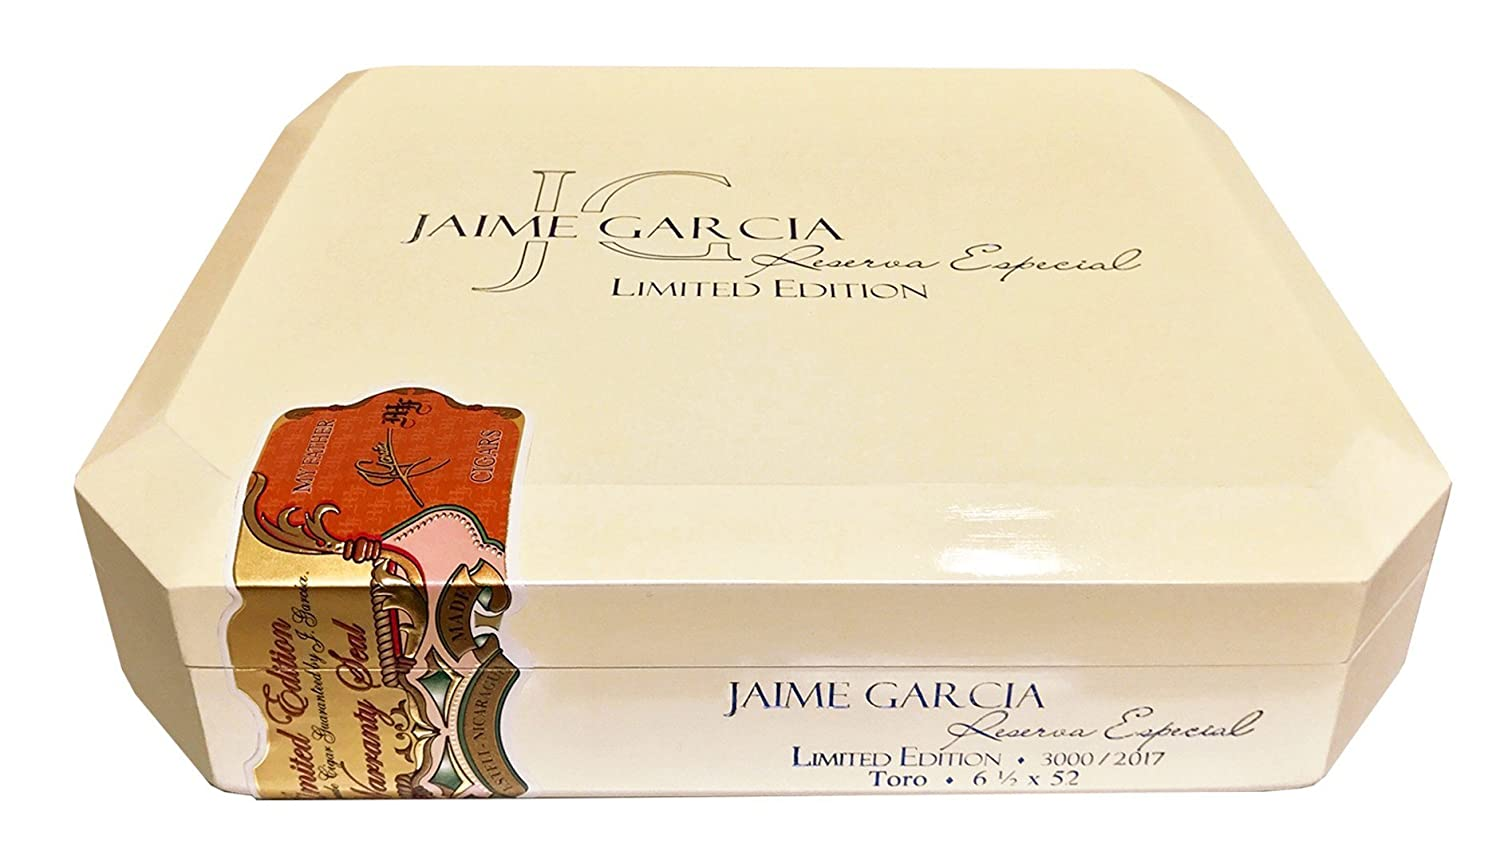 Amazon.com: Cigar Wood Case/Box Jaime Garcia Reserve Especial Limited Edition (Empty-Used): Health & Personal Care